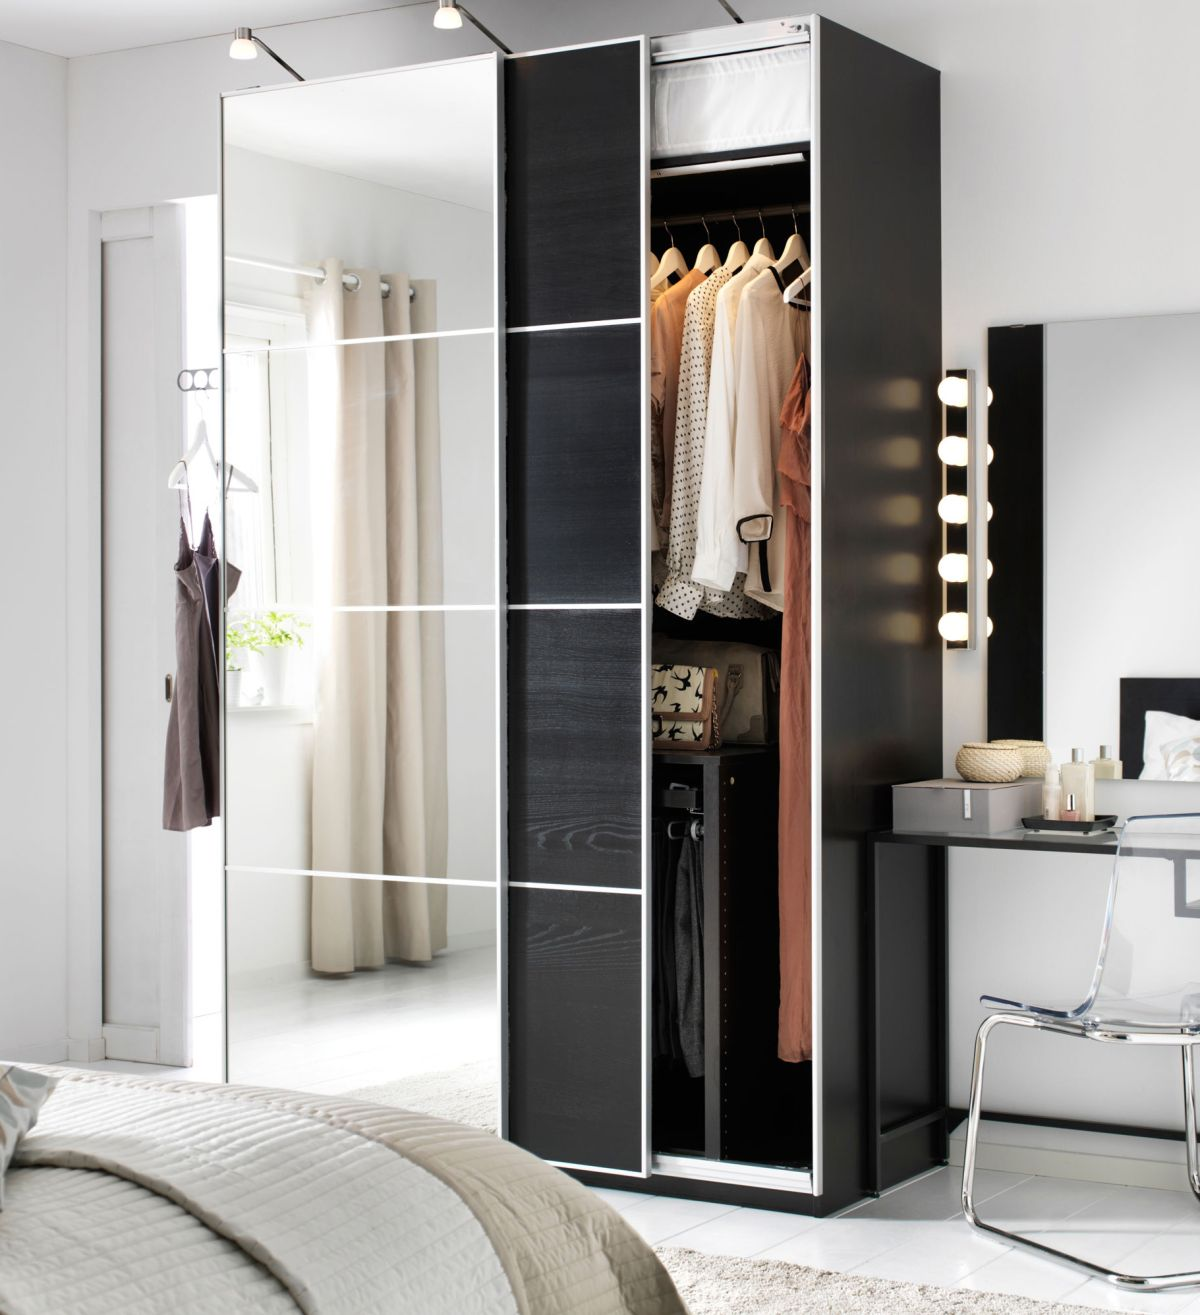 Bedroom storage ideas: 40 clever and stylish solutions | Real Homes